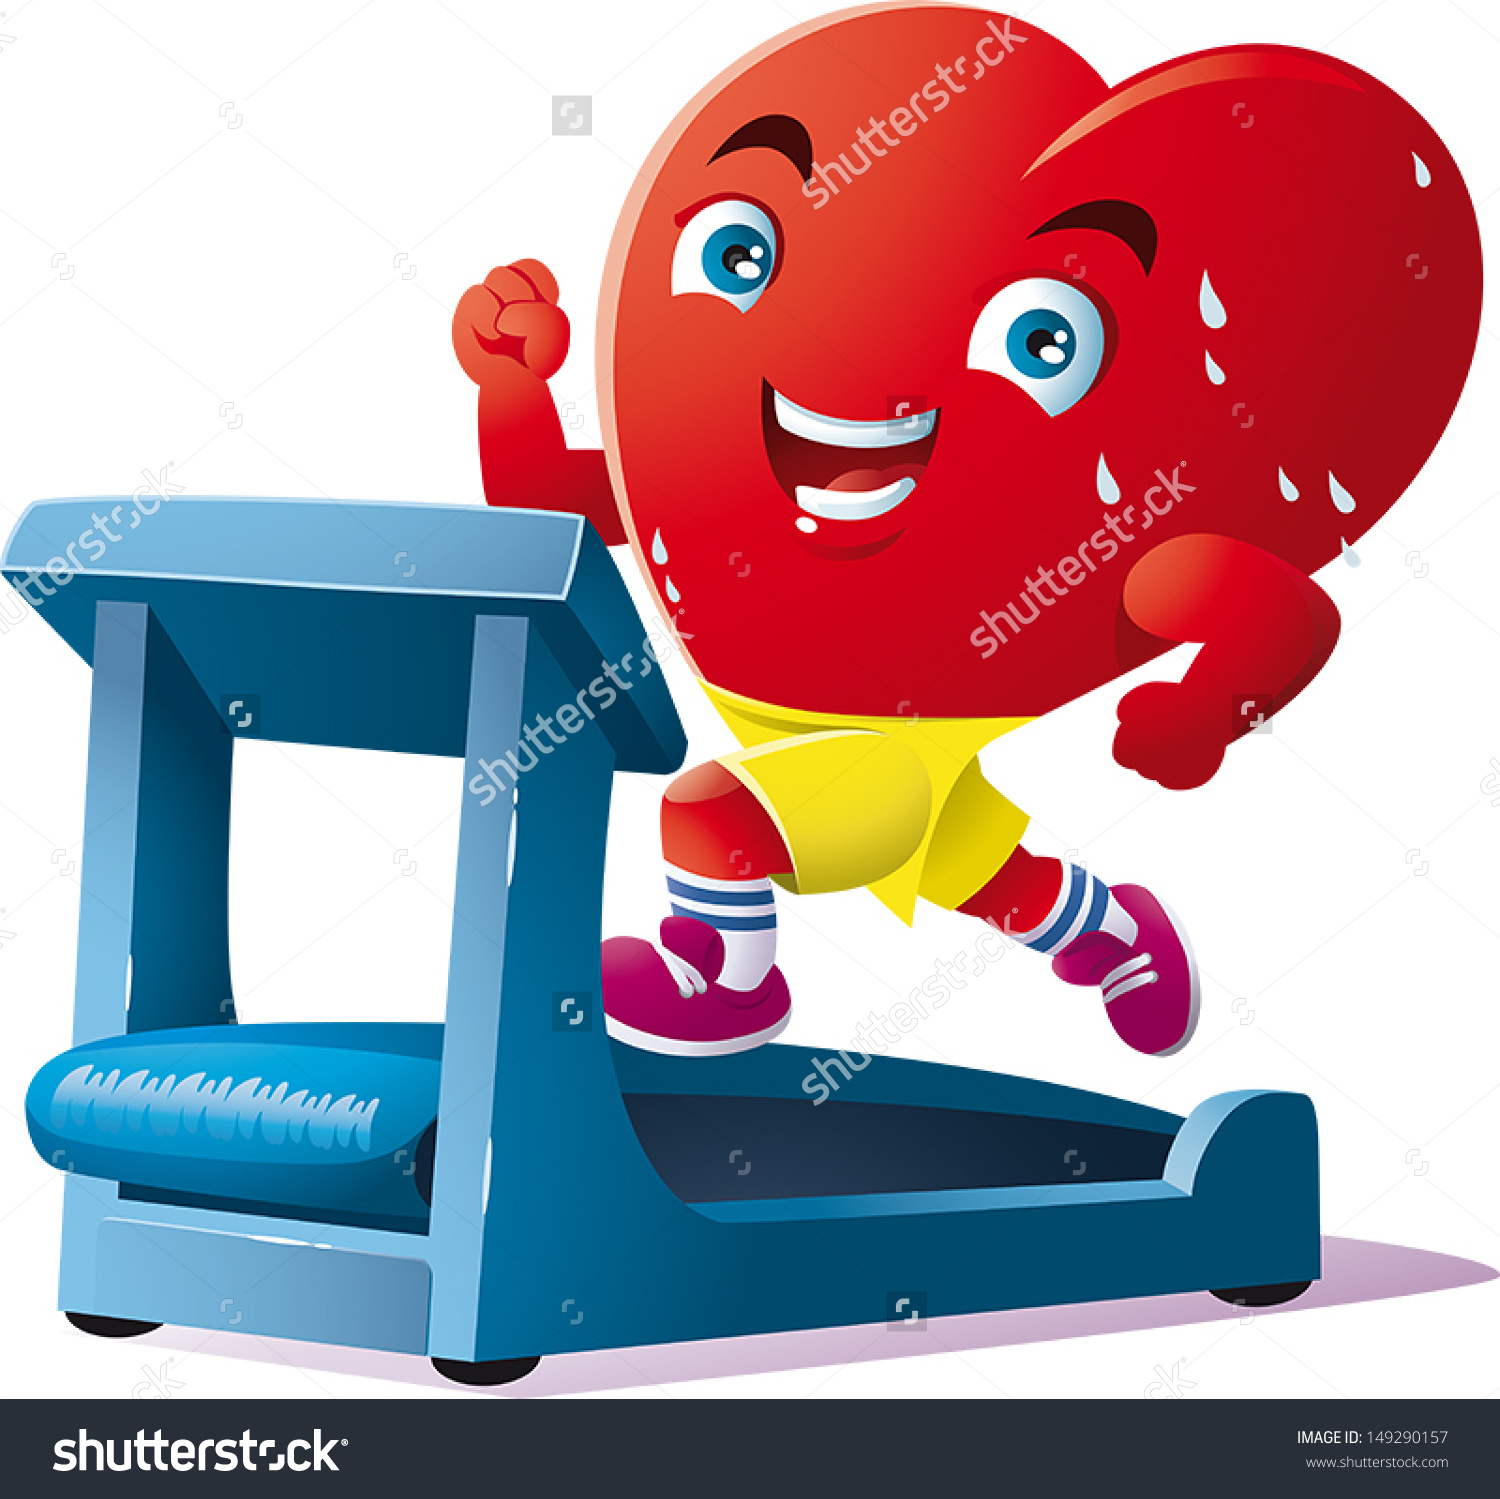 Animated Heart Run On Treadmill Stock Vector 149290157.